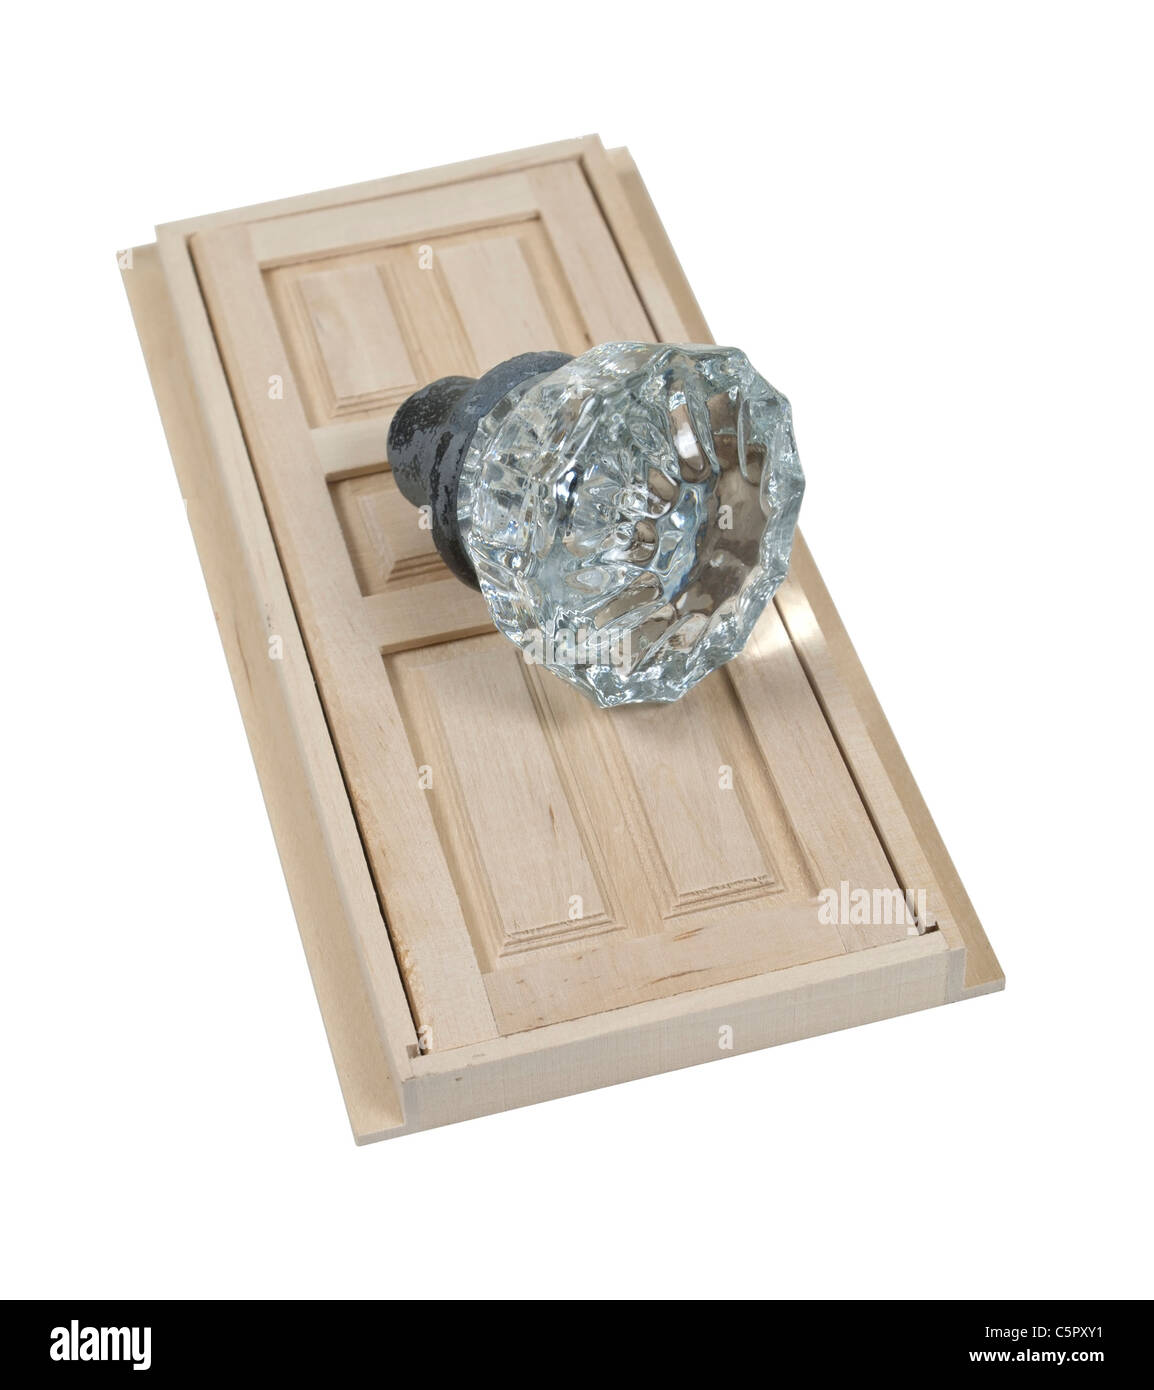 Antique Crystal Doorknob Used As An Interior Door Hardware With A Wooden  Door   Path Included